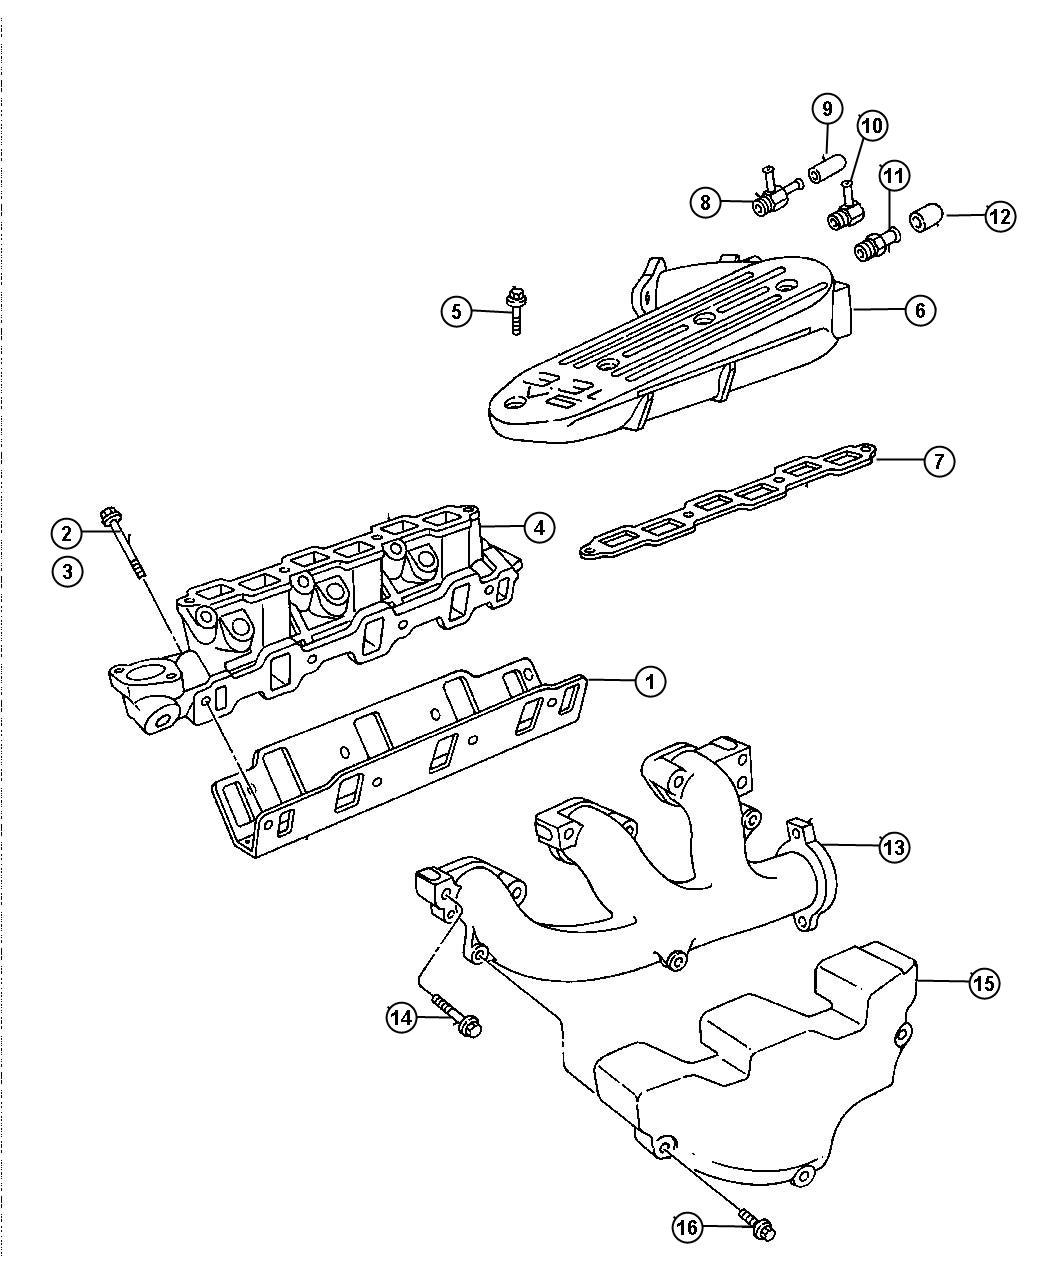 1993 Mazda 929 Owners Manual Today Guide Trends Sample Engine Diagram Fuel Pump Wiring Nissan 240sx Parts